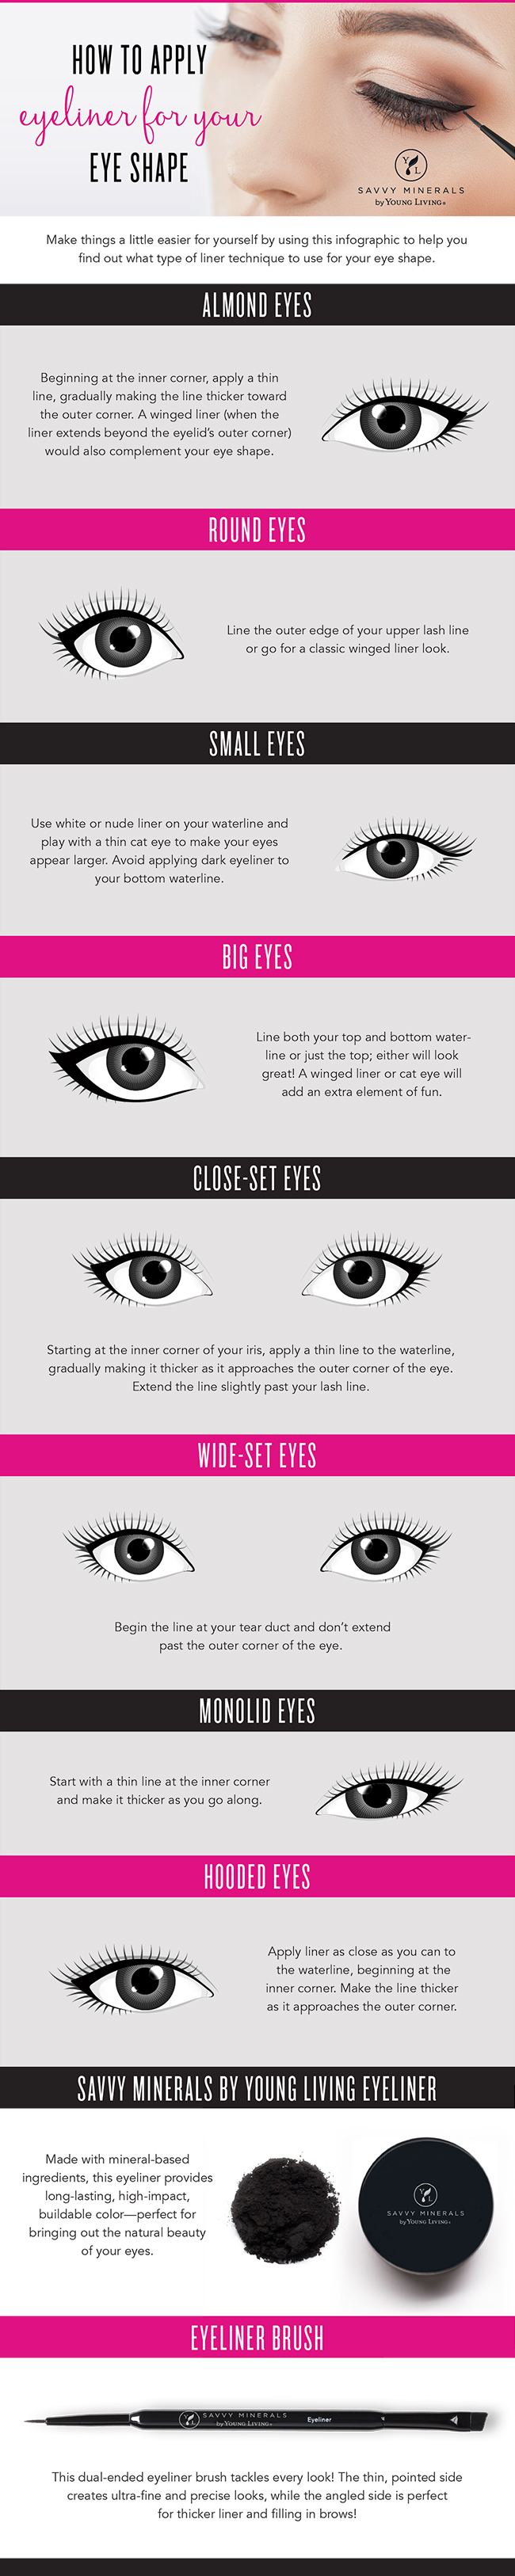 How to apply eyeliner for your eye shape Young Living Savvy Minerals